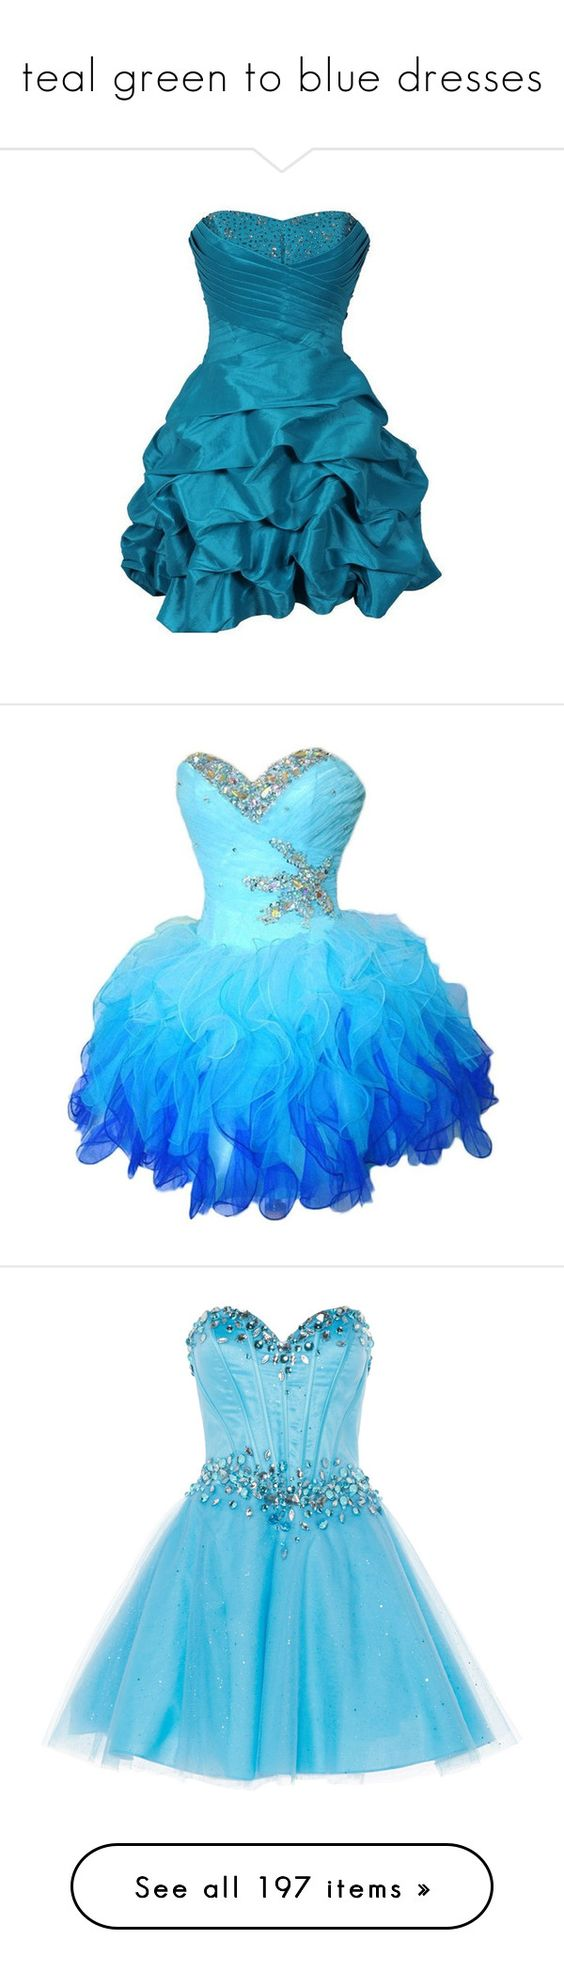 best images about dresses on pinterest blue dresses prom